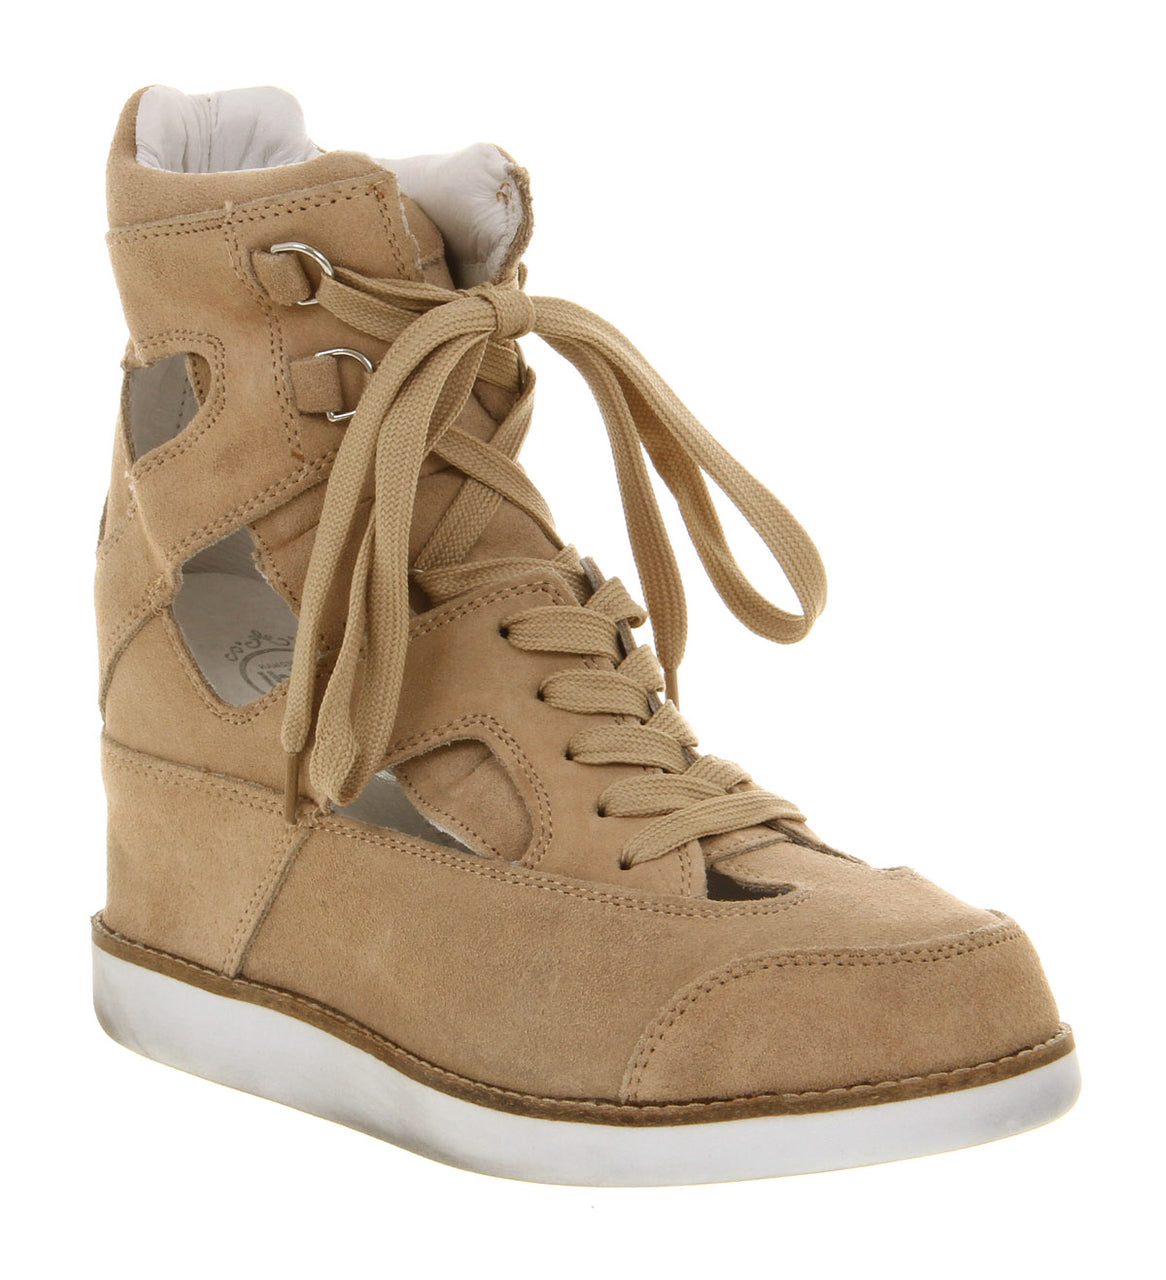 Womens Jeffery Campbell Padua Wedge Trainer Nude Suede Uk Size 6